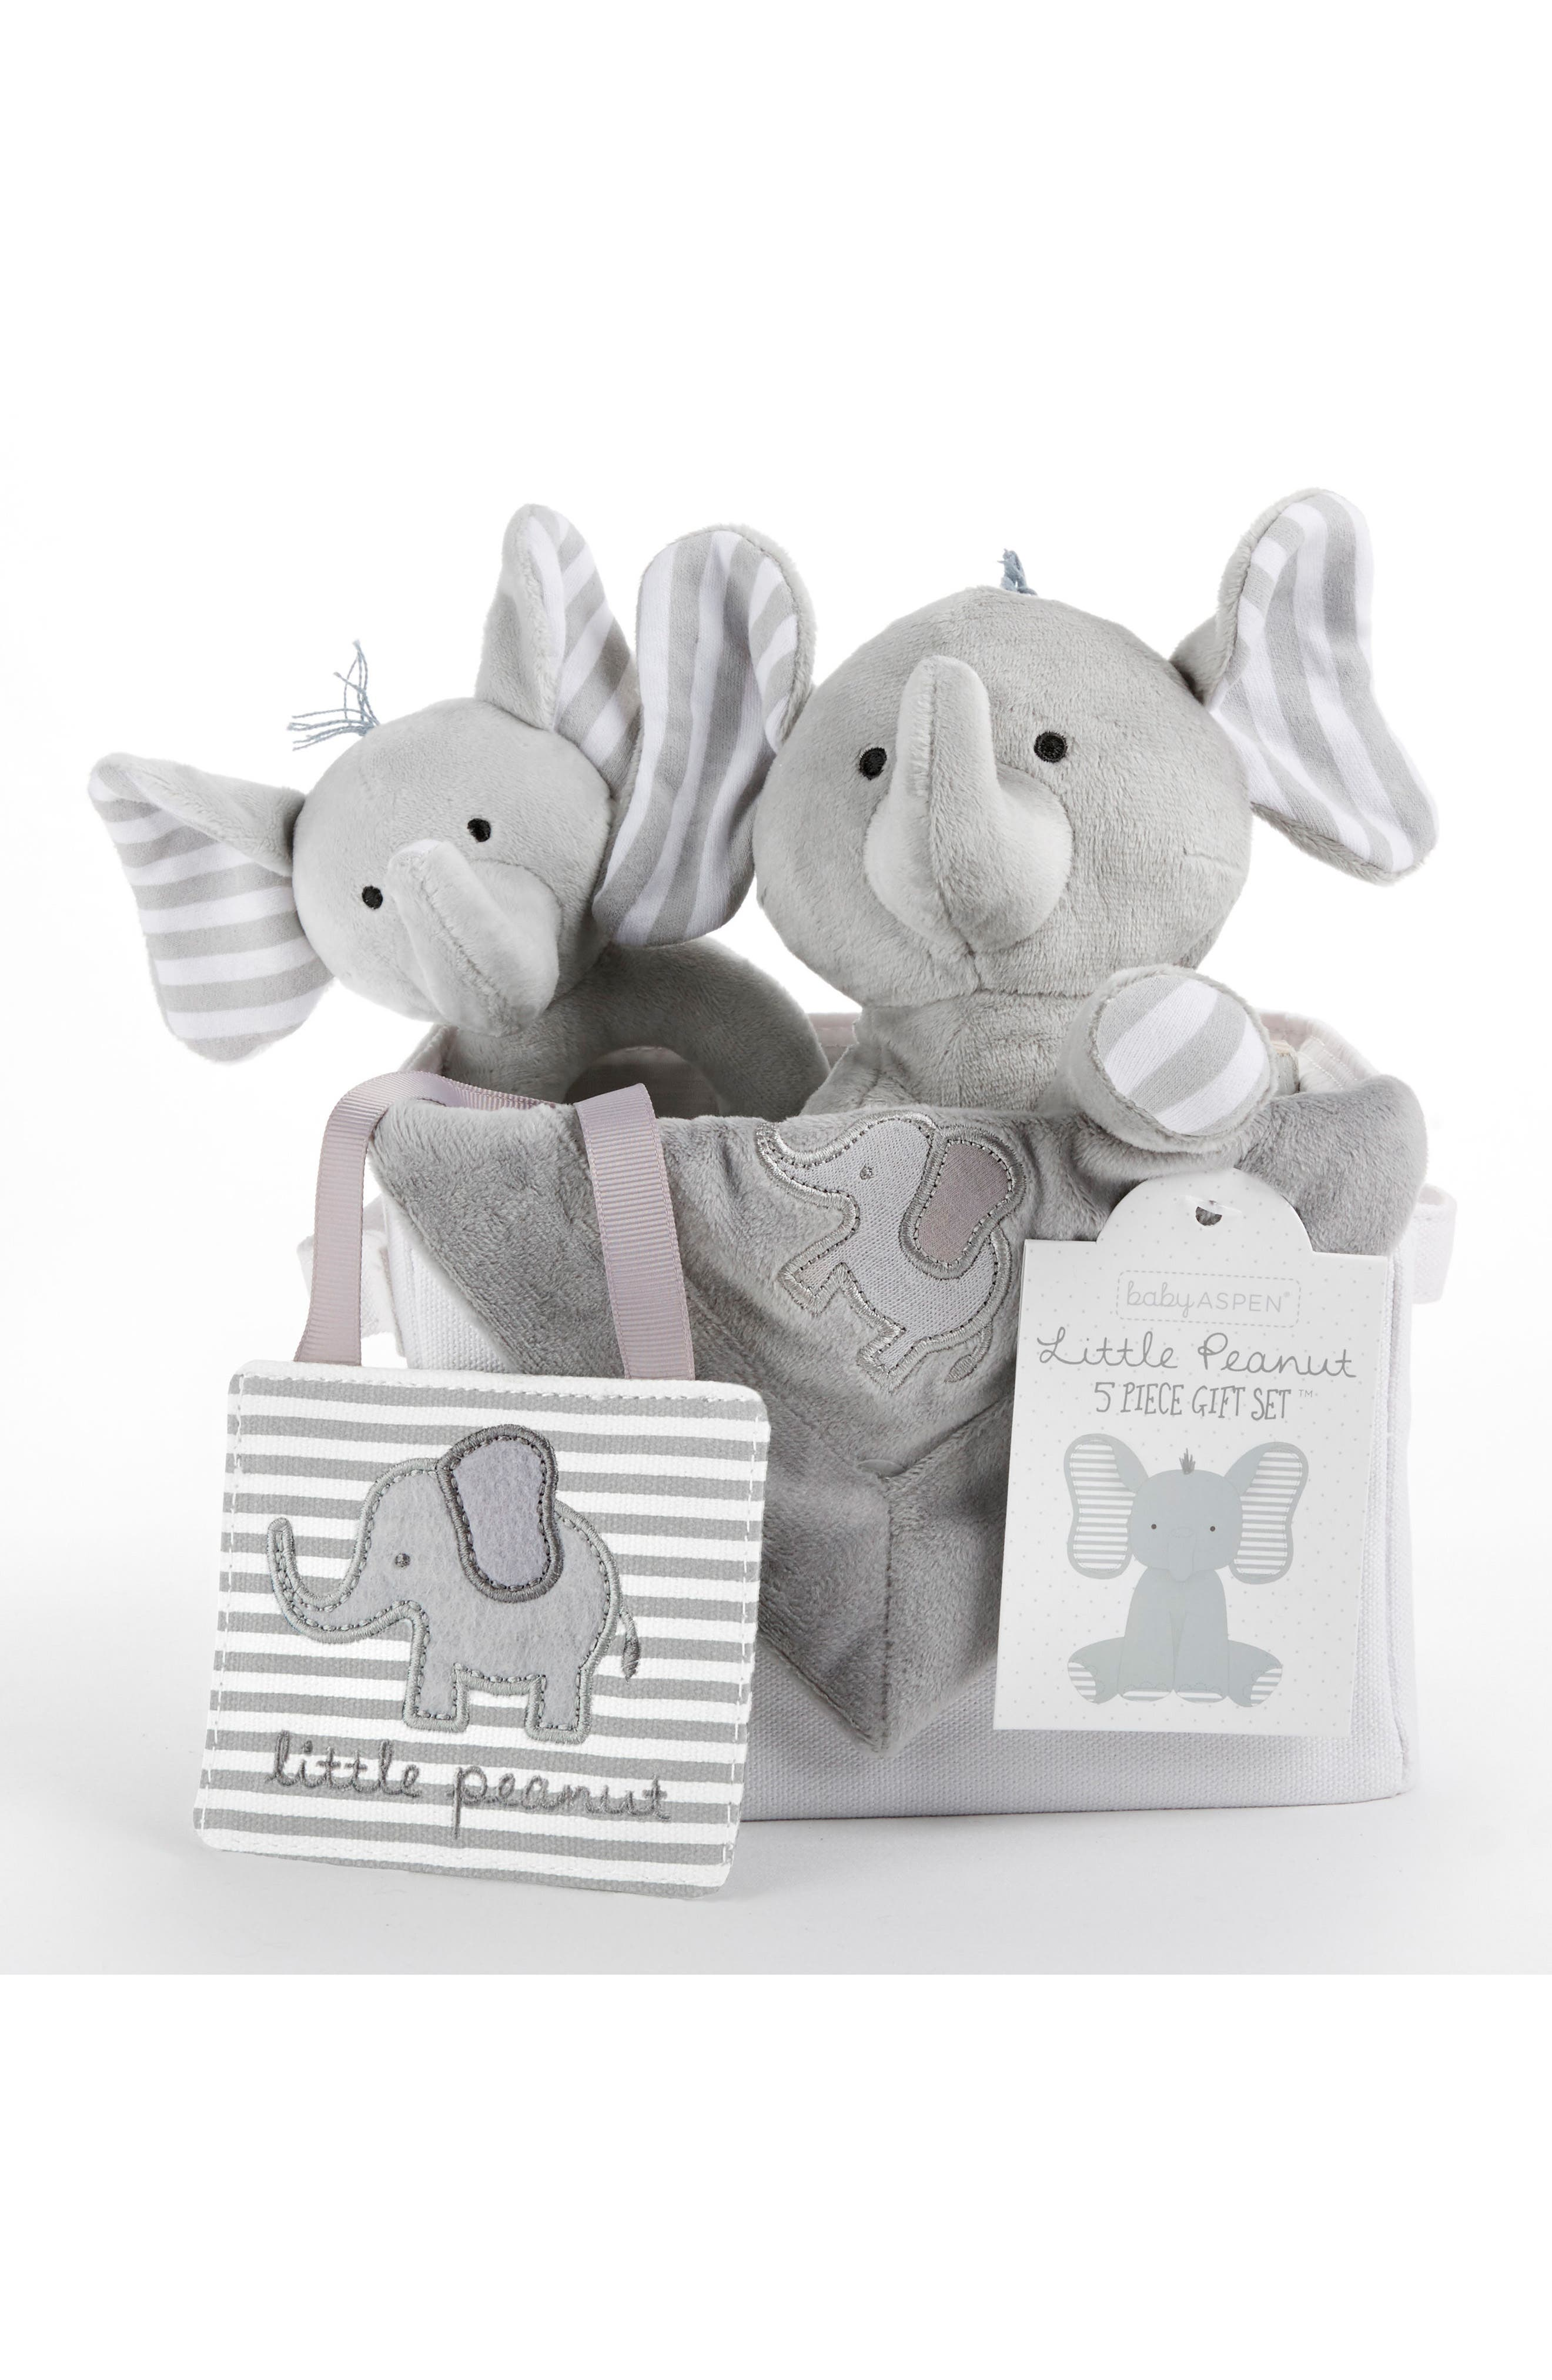 Little Peanut Elephant 5-Piece Gift Set,                             Main thumbnail 1, color,                             GREY AND WHITE